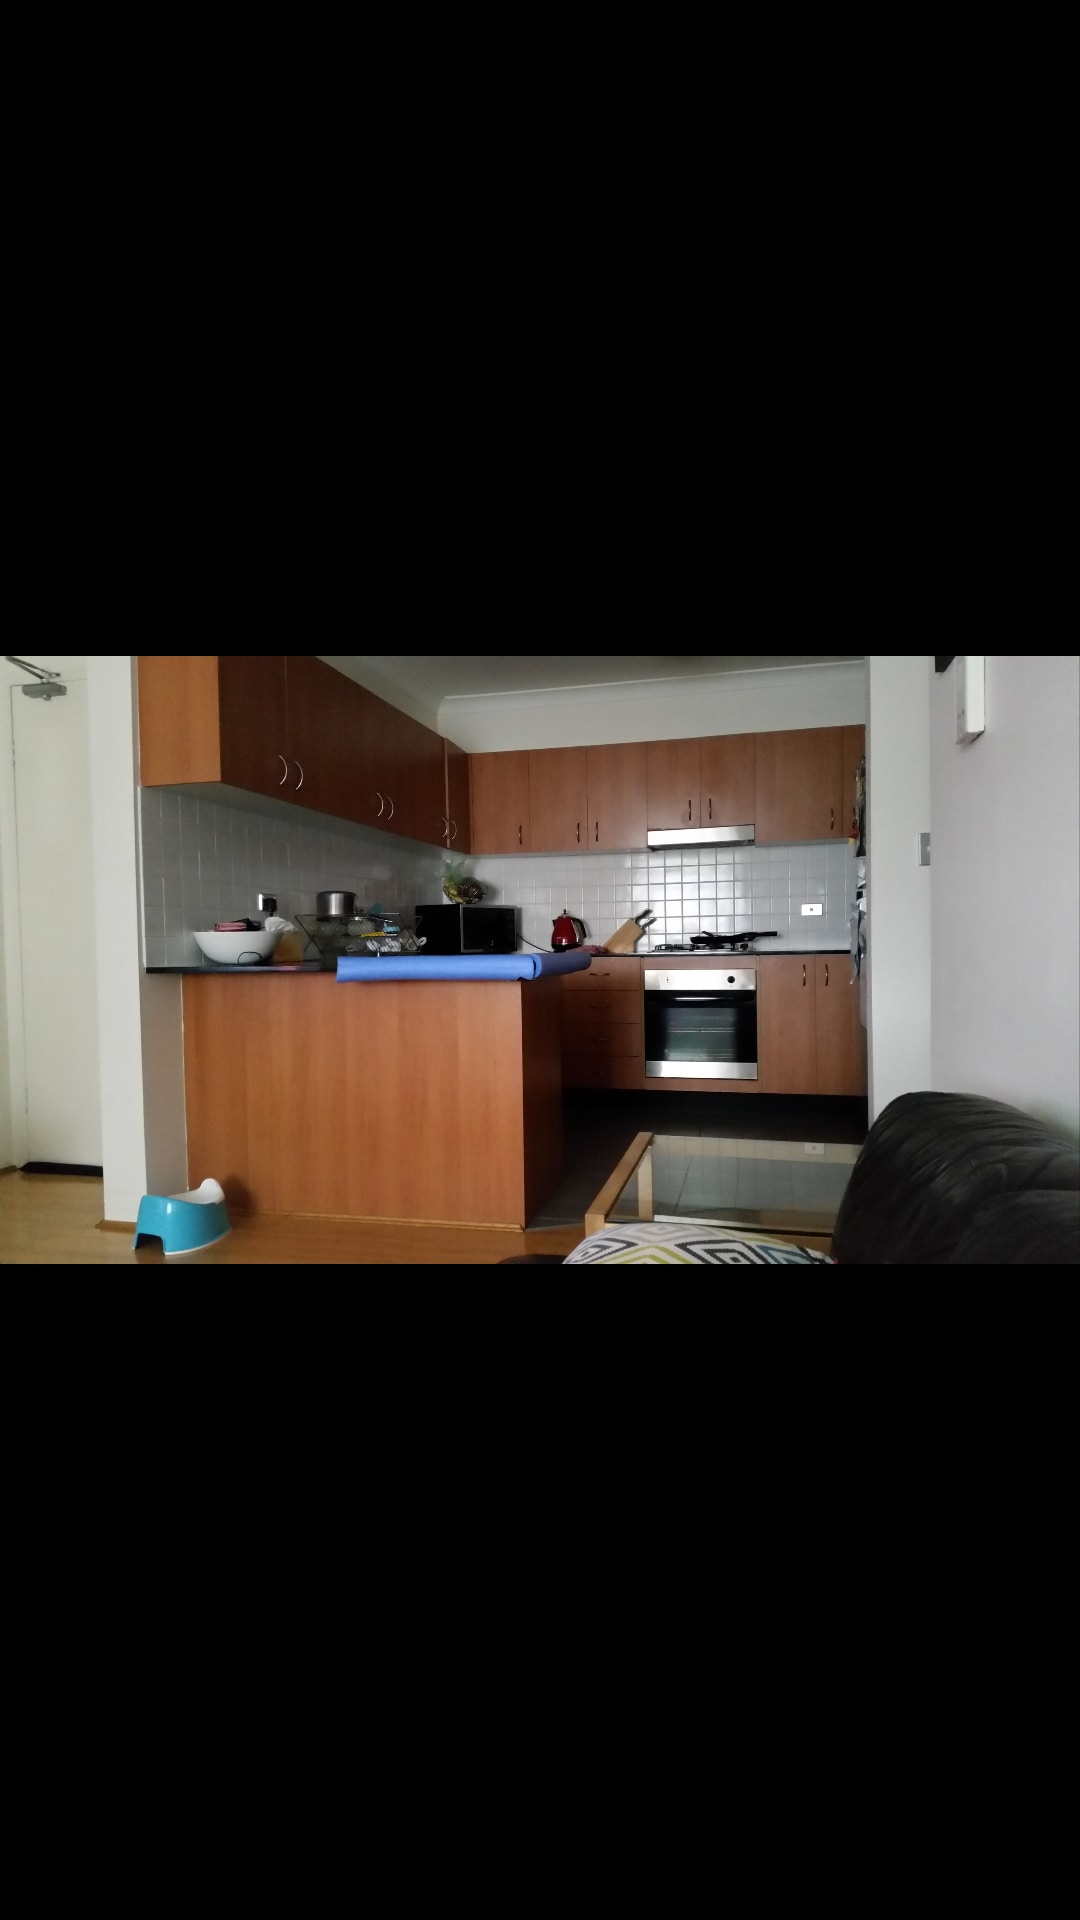 Two Bedroom Apartment Sydney